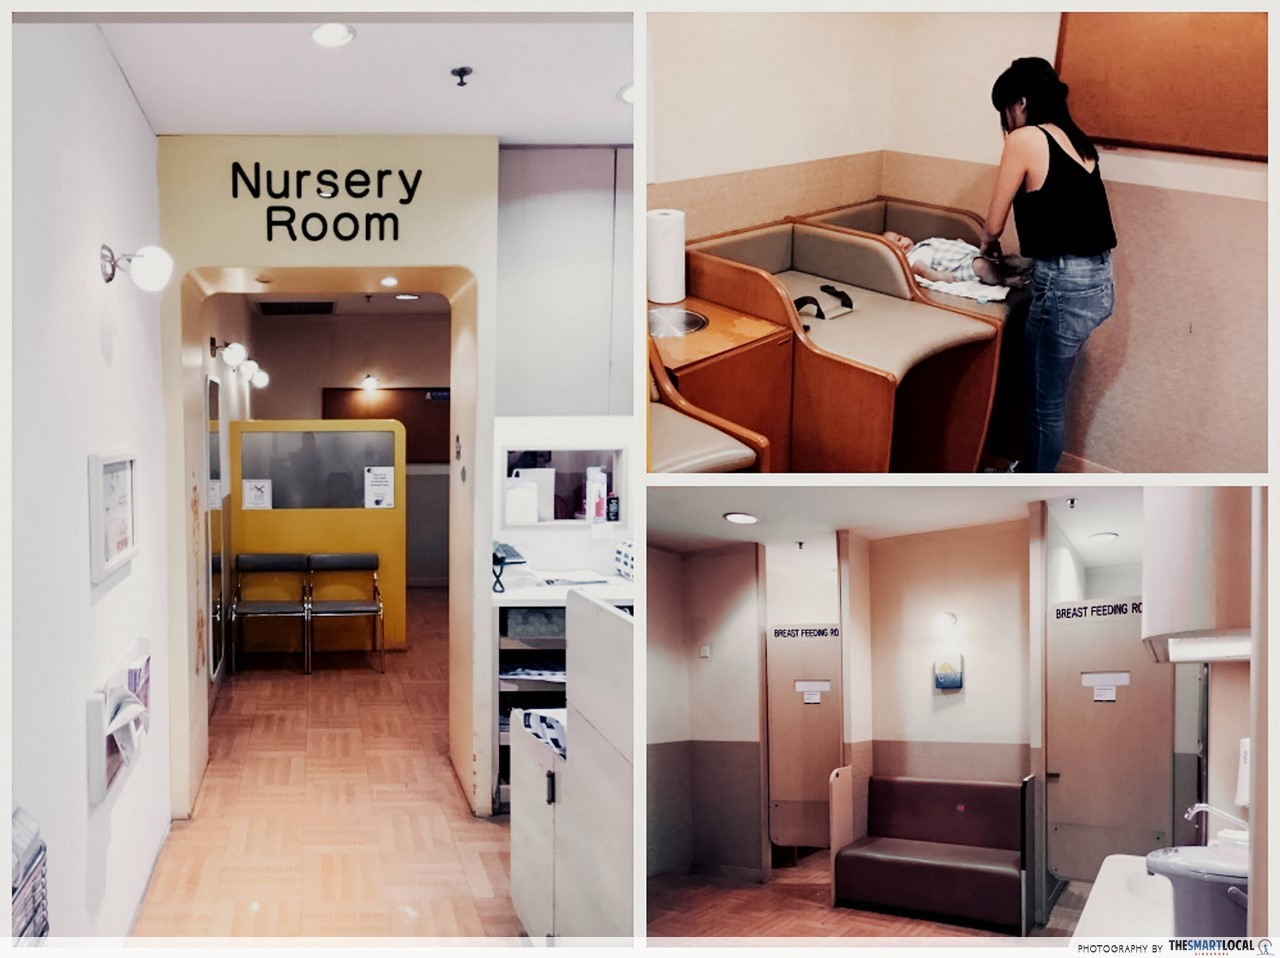 17 Nursing Rooms In Orchard For Singaporean Mums To Freely Shop With Baby In Tow TheSmartLocal